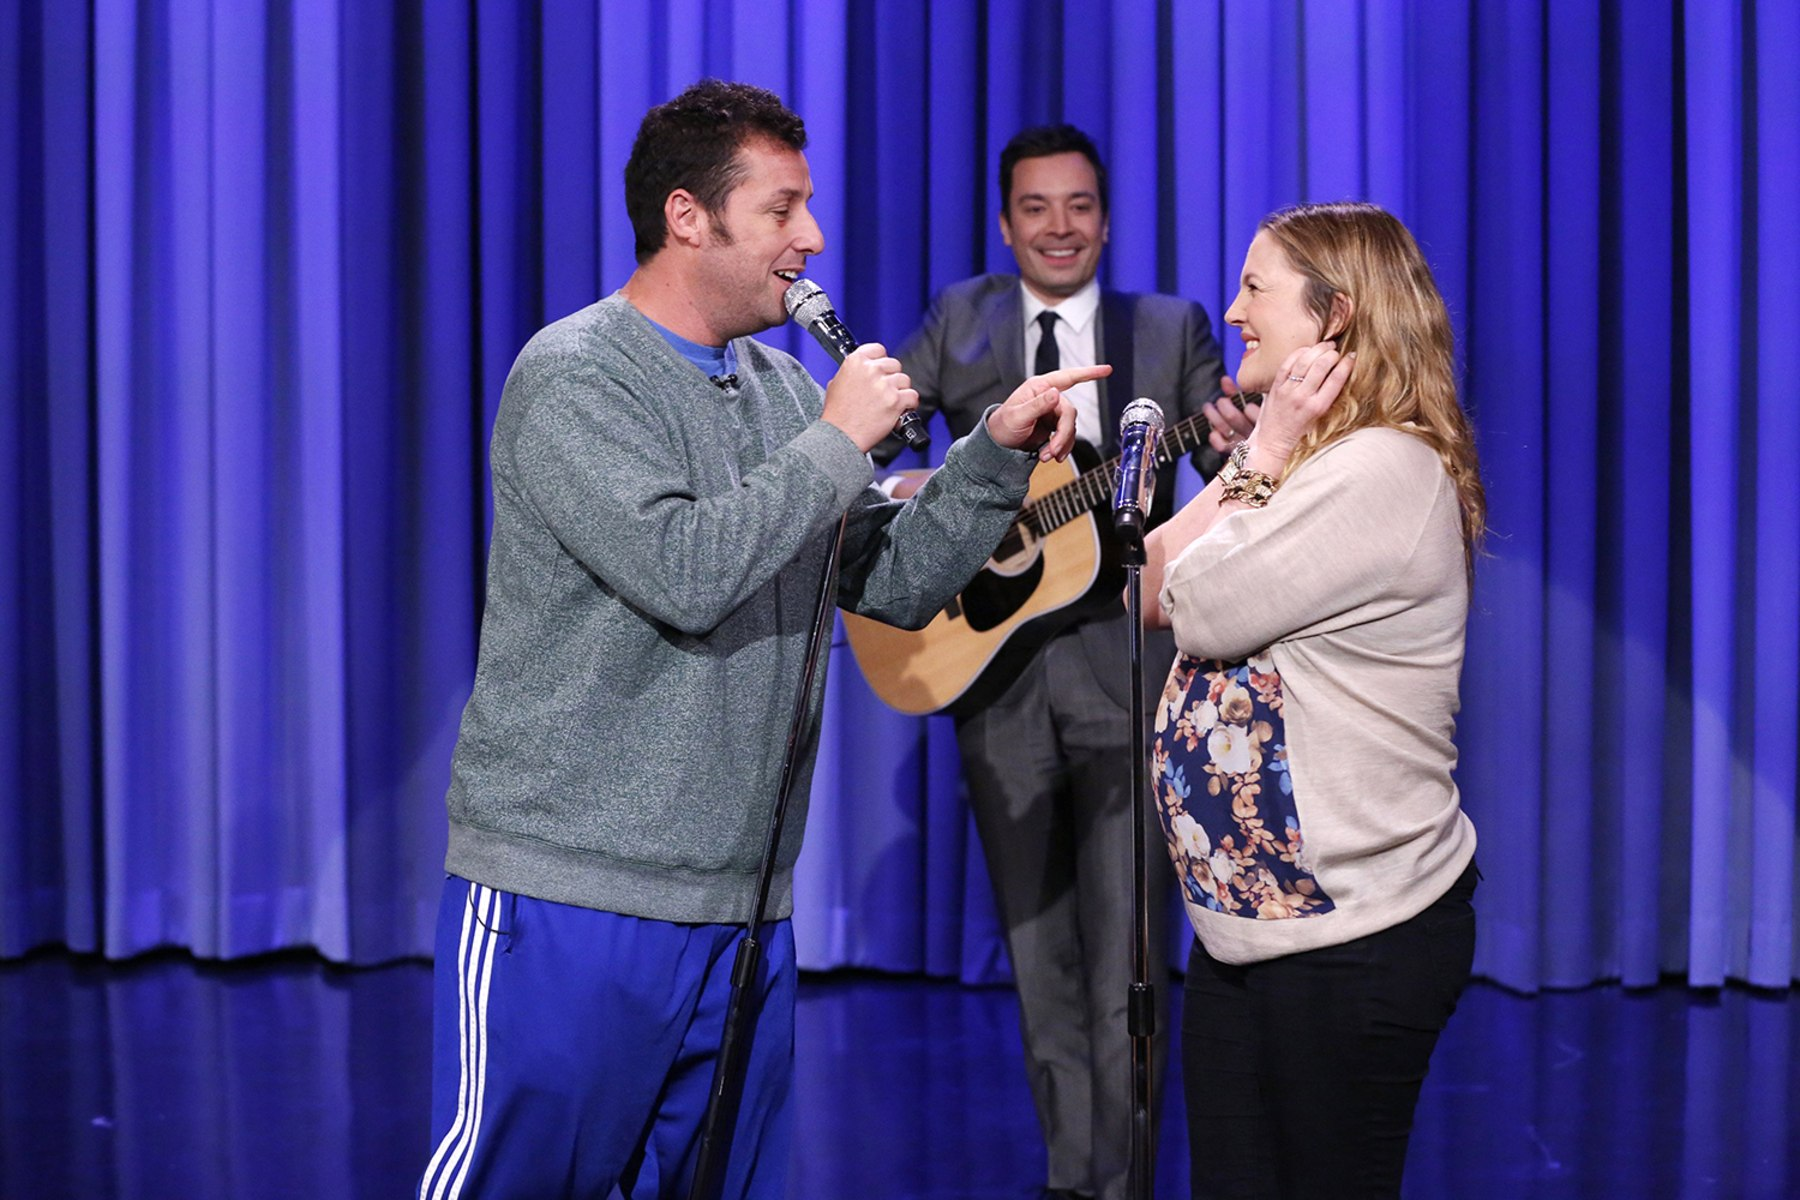 Image: The Tonight Show Starring Jimmy Fallon - Season 1